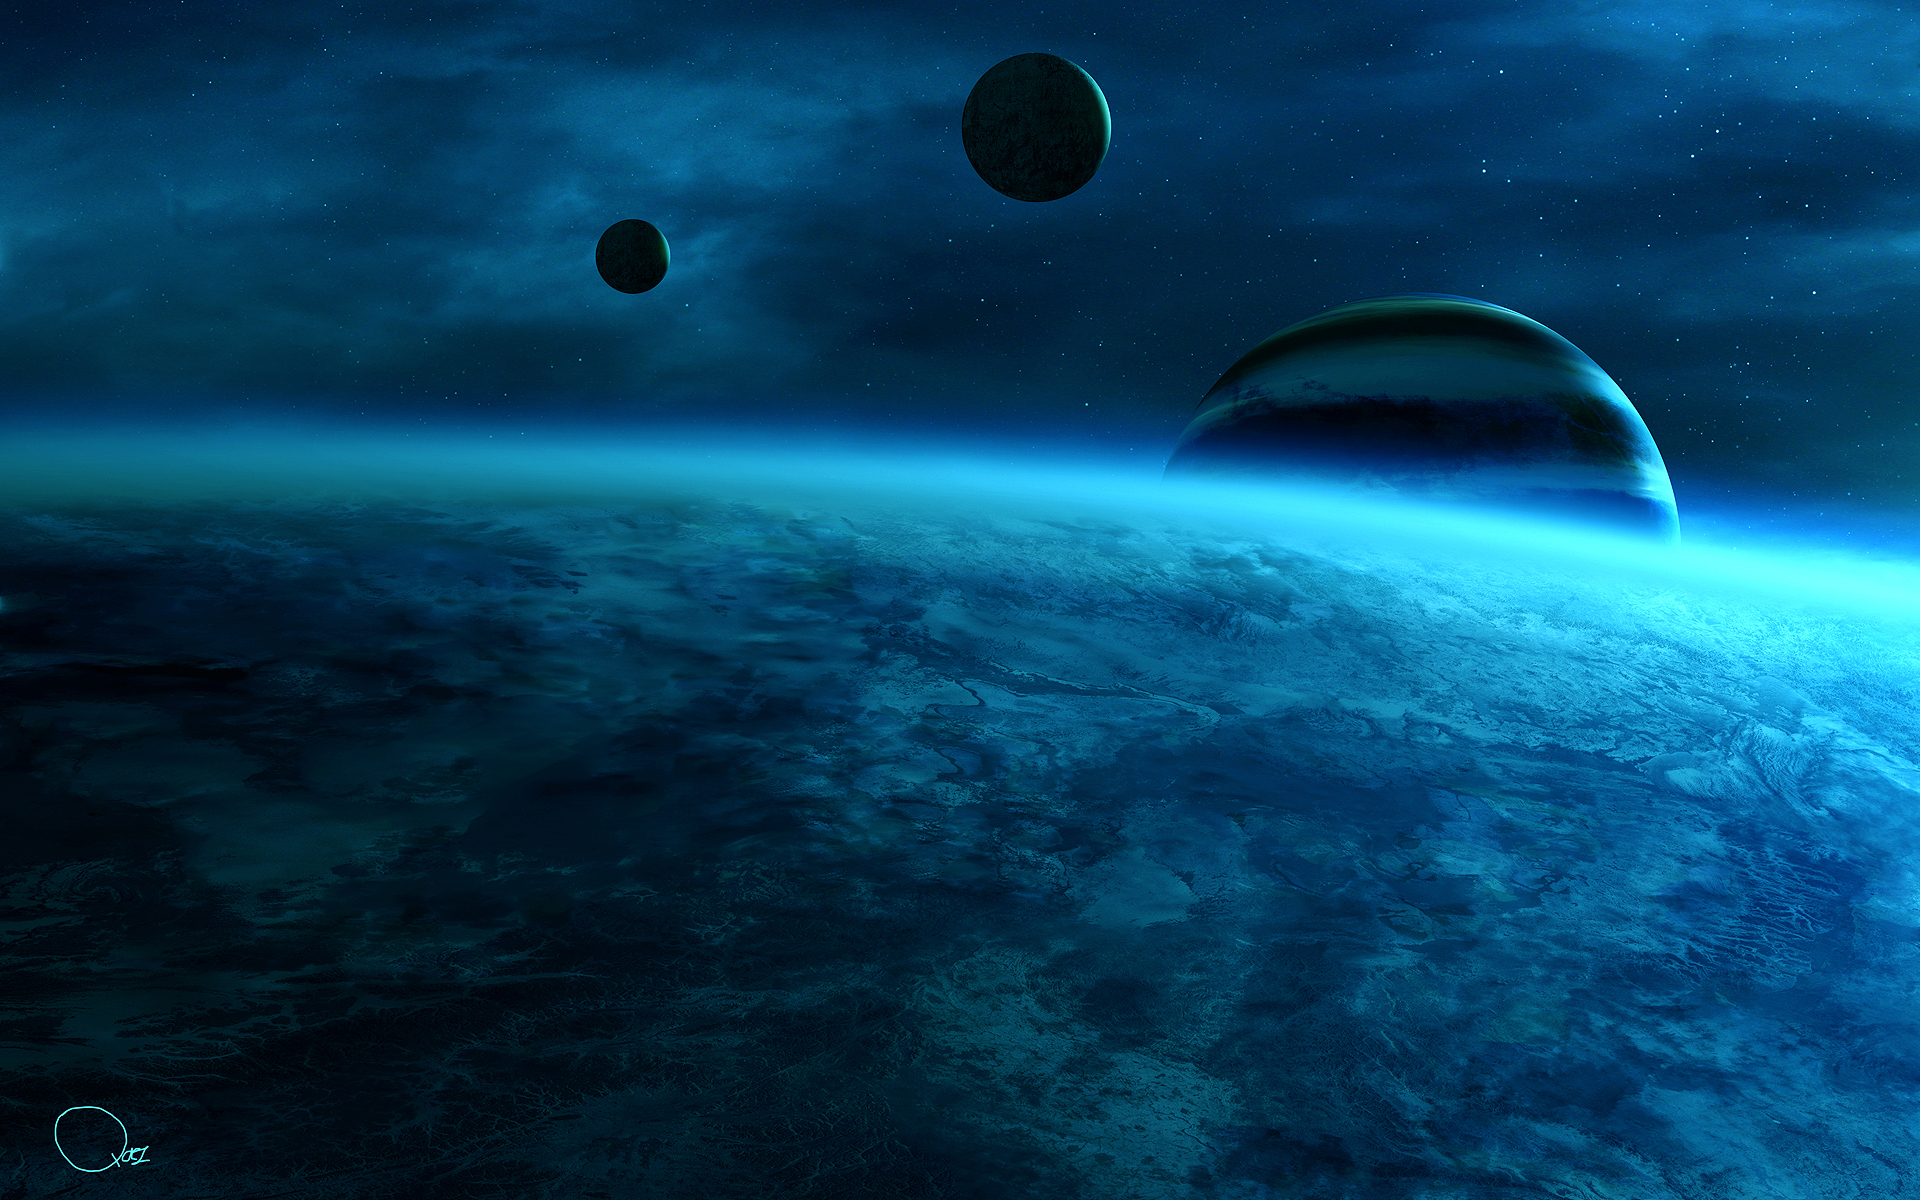 Space Fantasy Wallpaper Set 99 Awesome Wallpapers